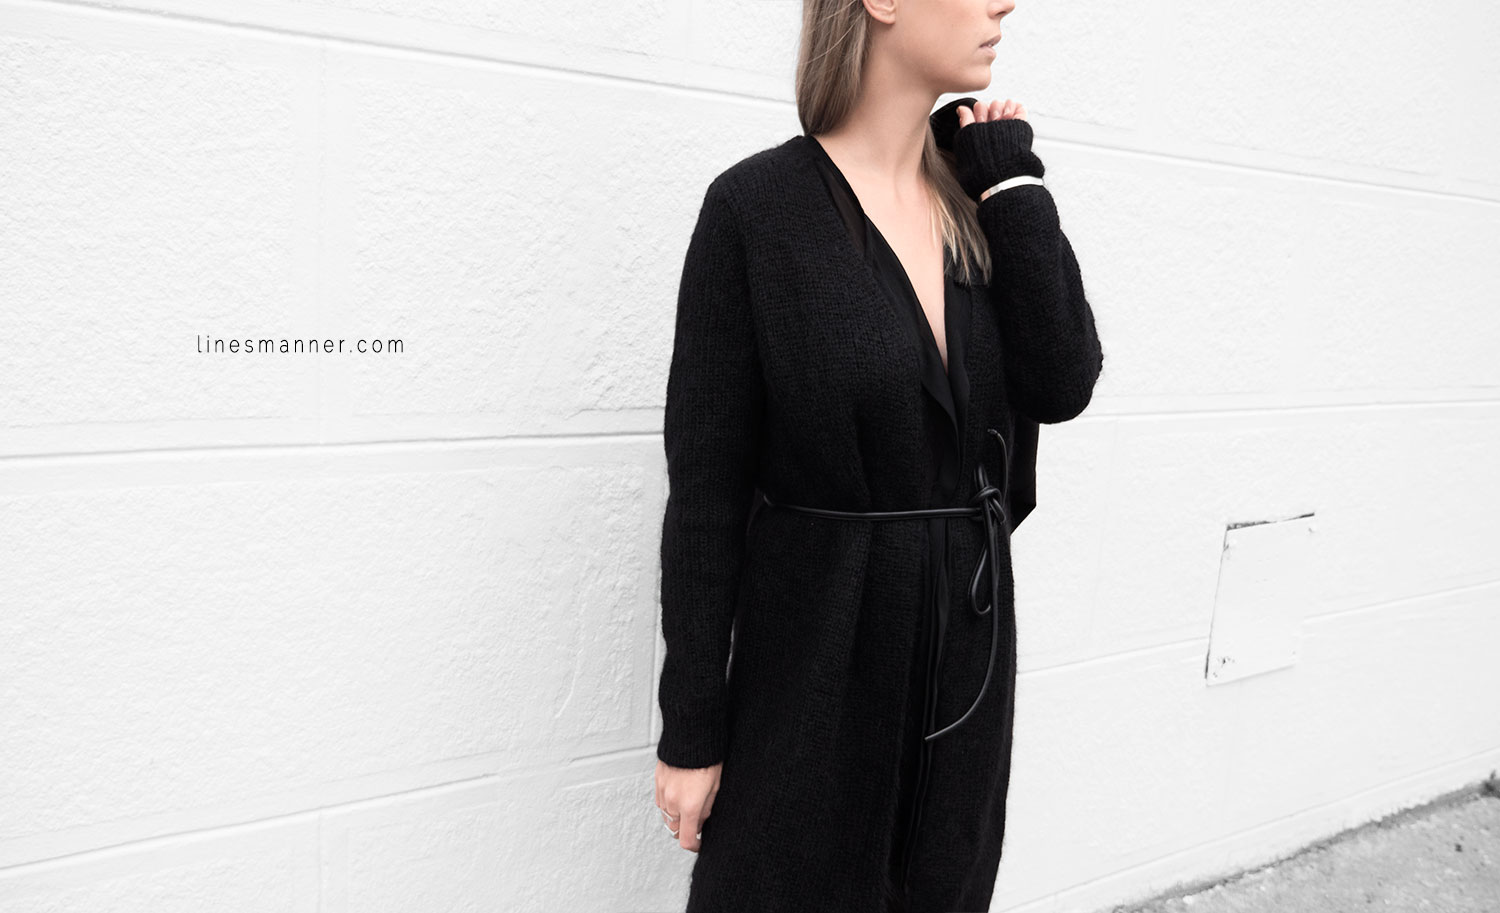 Lines-Manner-Timeless-Comfort-Essentials-Monochrome-Trend-Minimal-Textures-Oversized-Warm-Fall-Leather-Details-Simplicity-Modern-Basics-Outfit-Structure-10